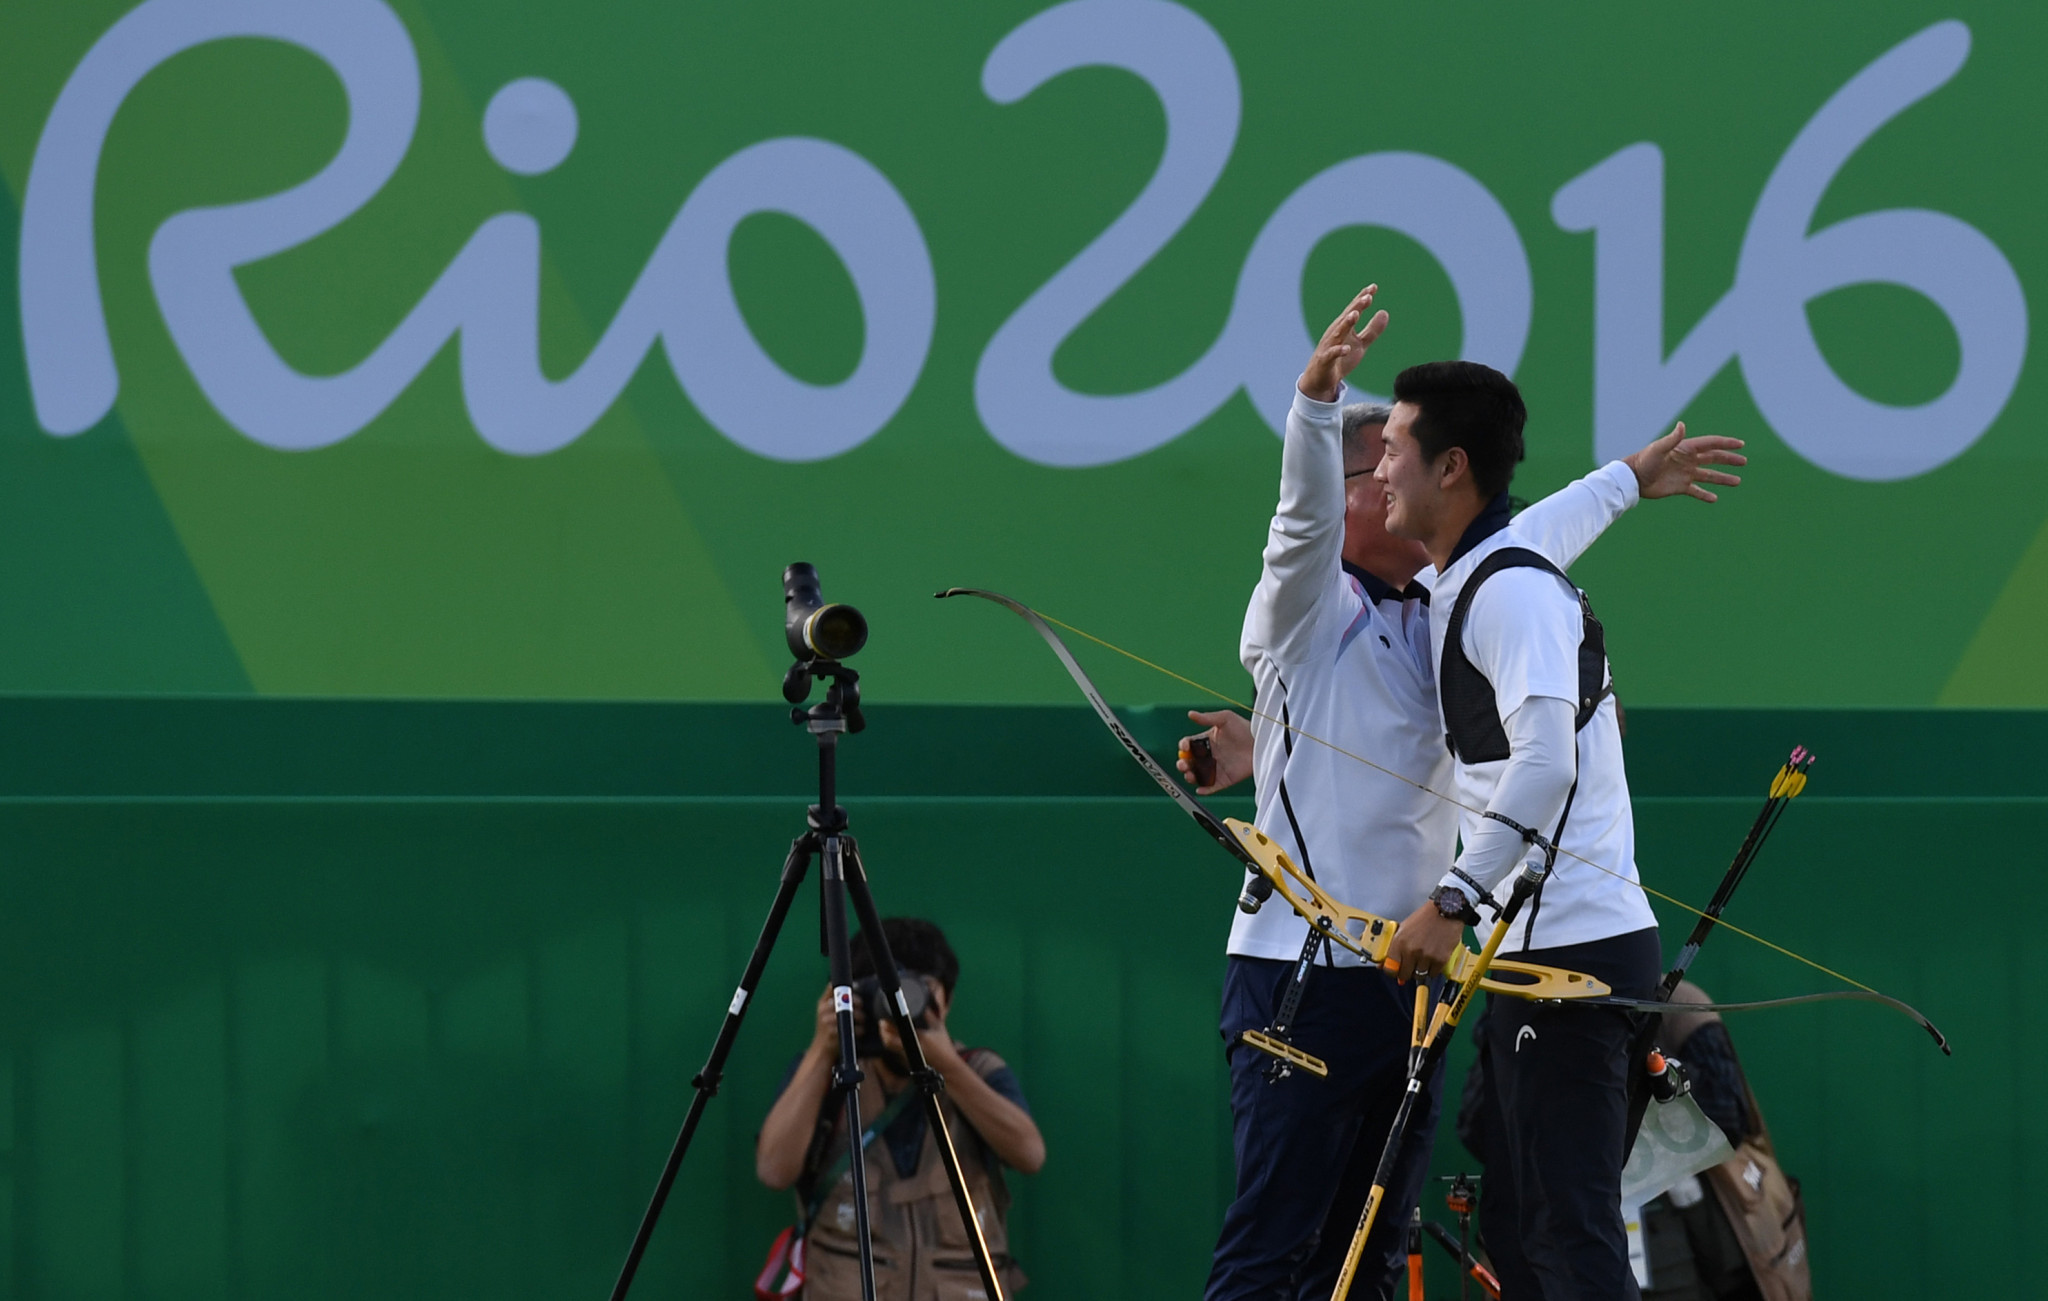 South Korean archers won all four Olympic titles at Rio 2016, finishing top of the sport's medal table for the eight consecutive Games, a record stretching back to Seoul 1988 ©Getty Images